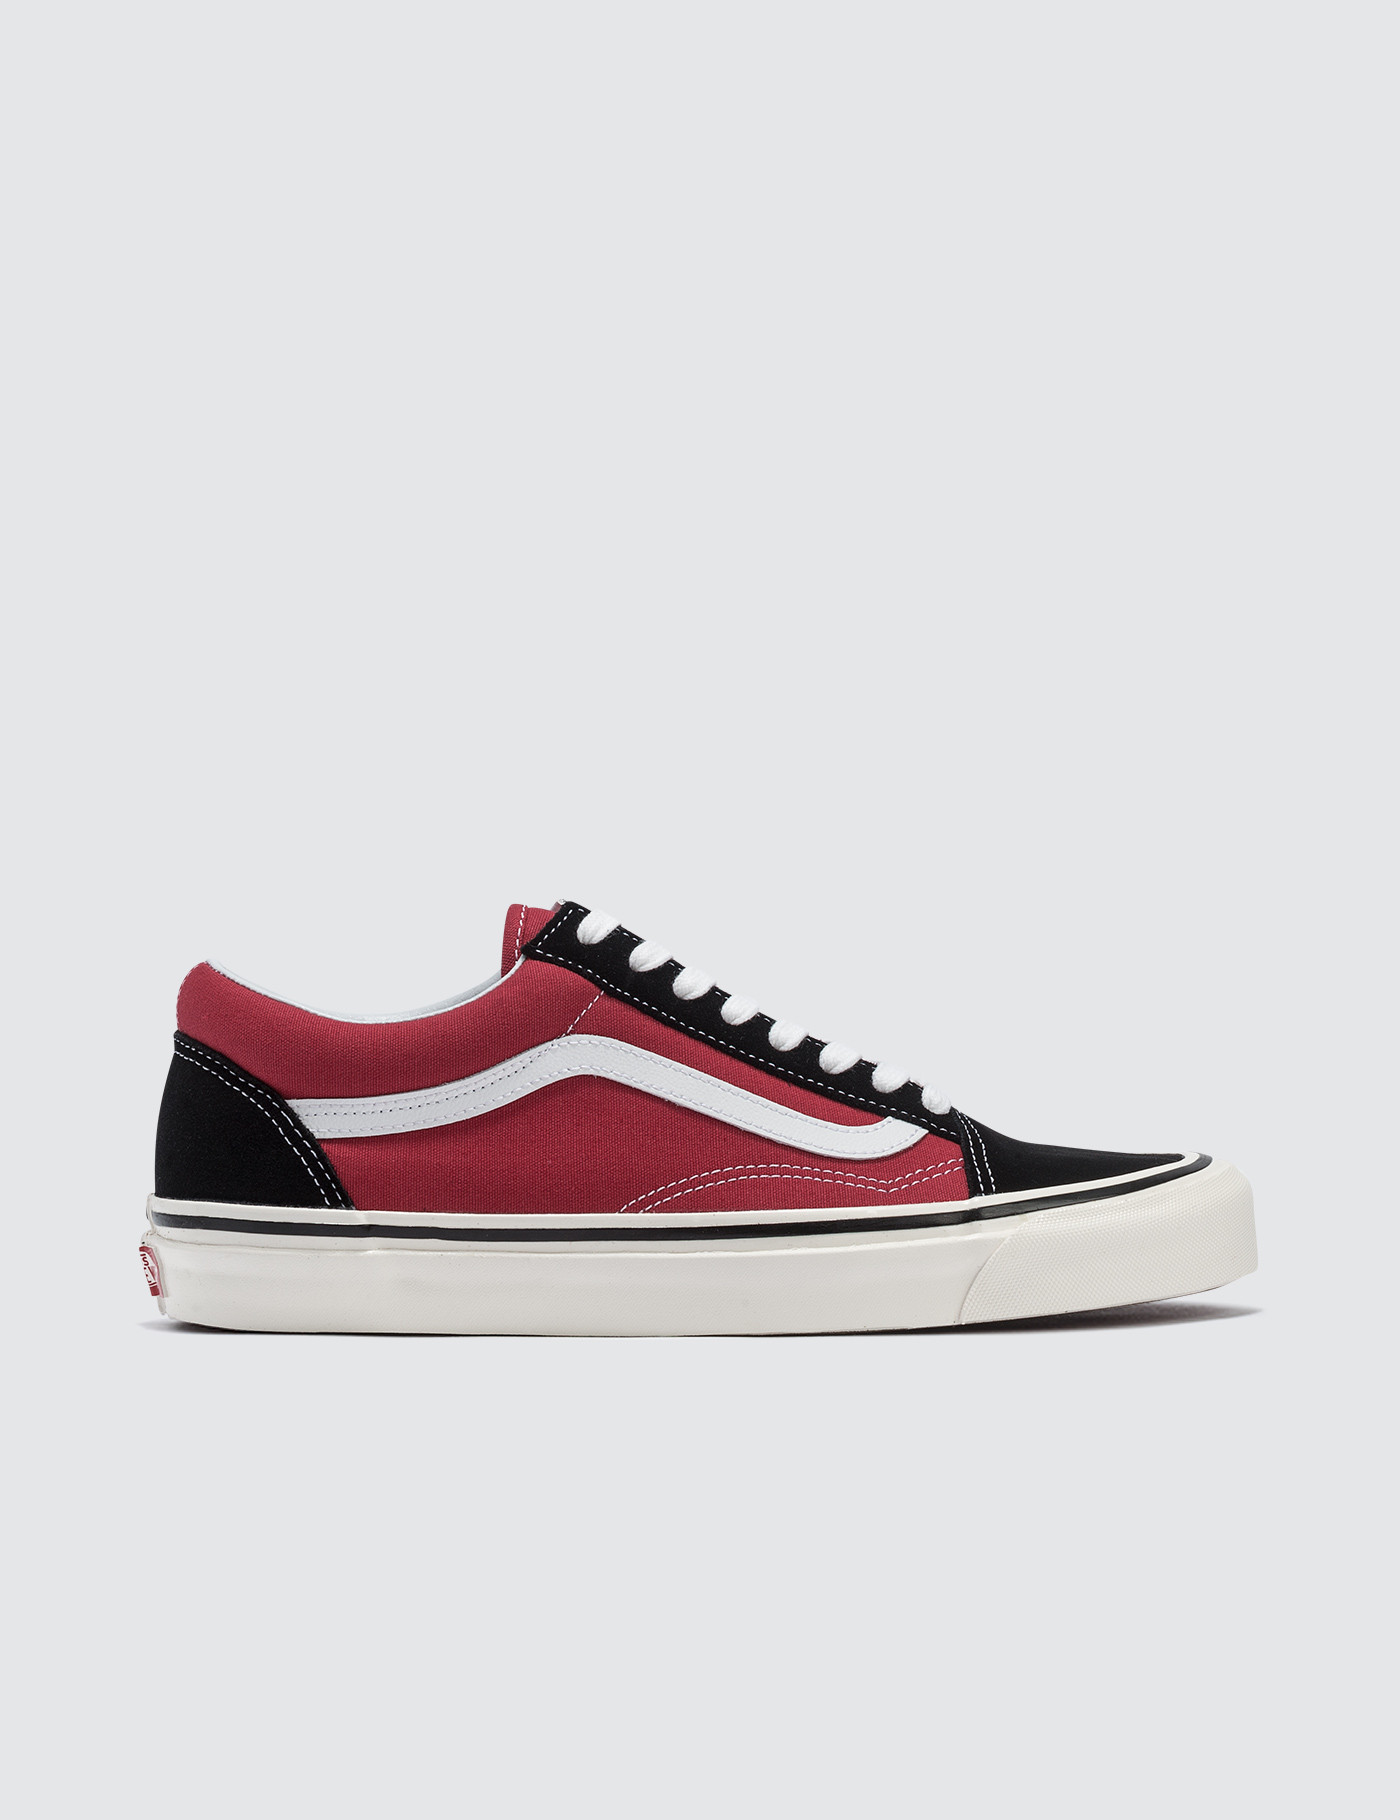 111c9545fdb52c Buy Original Vans Old Skool 36 DX at Indonesia